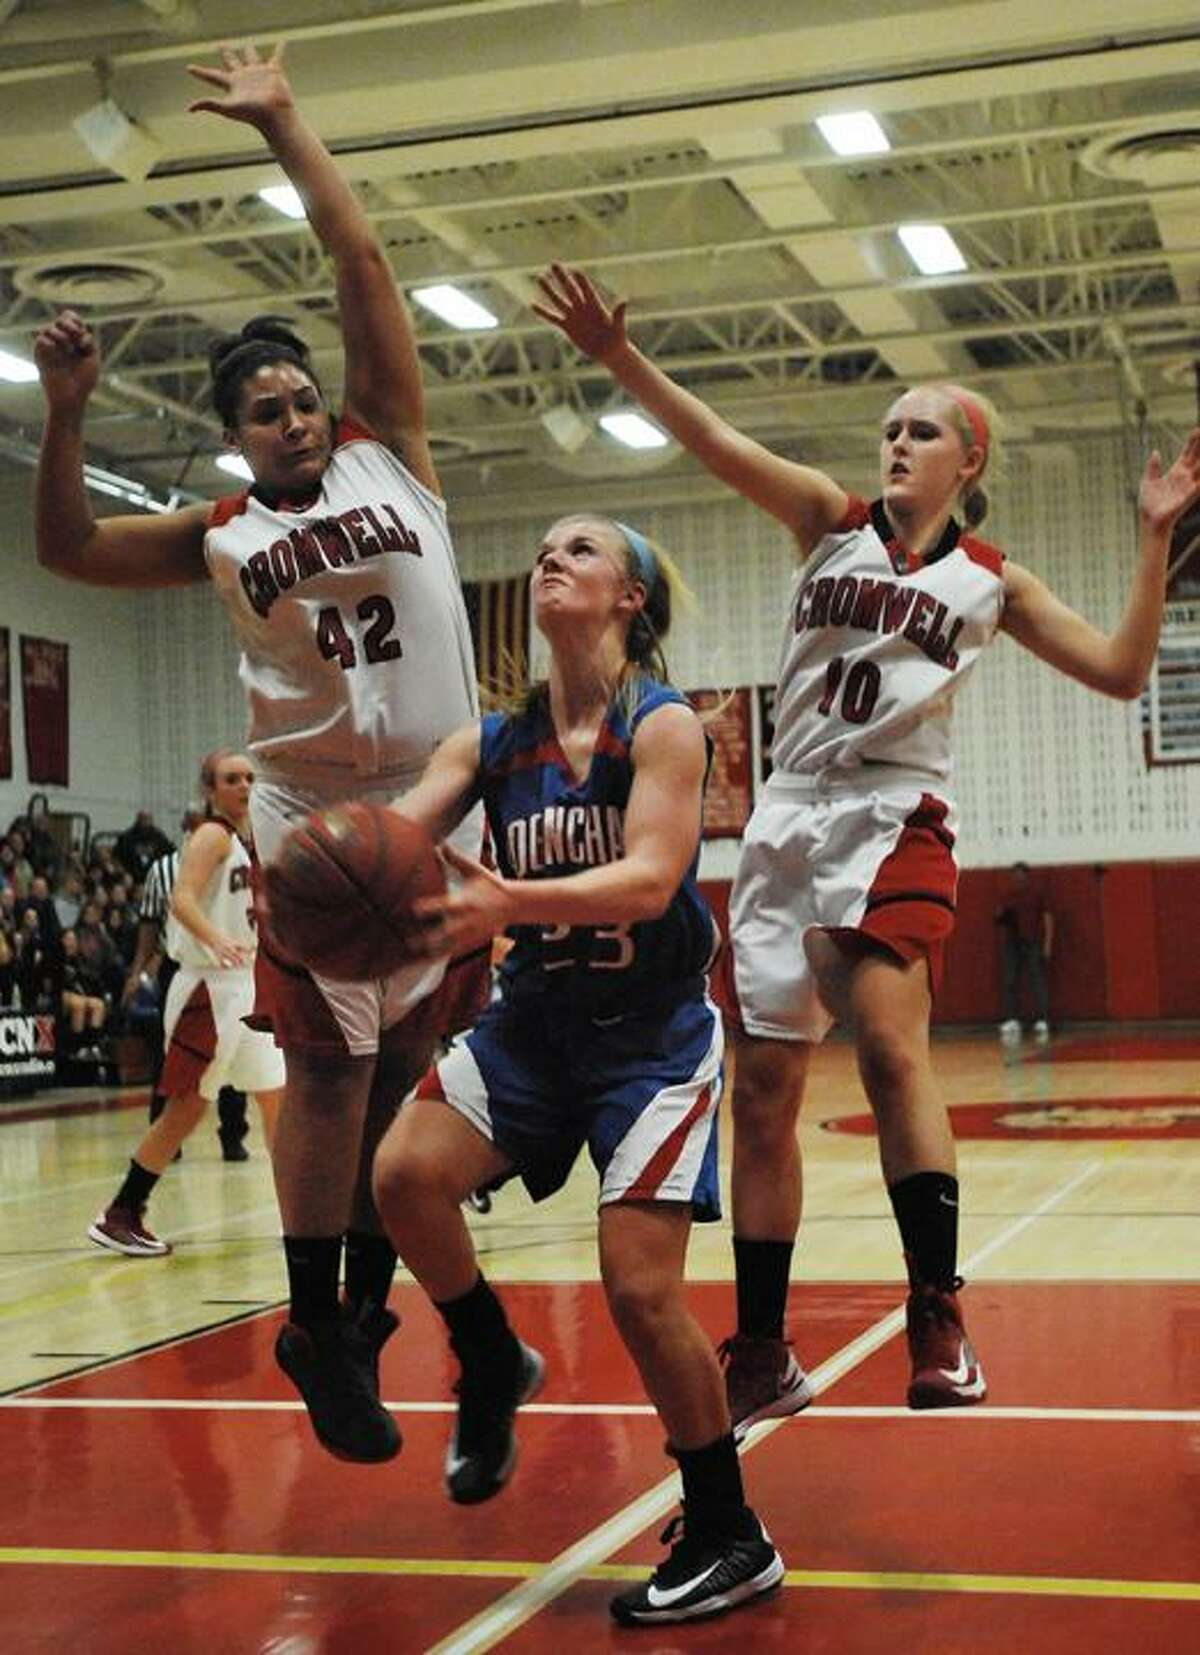 Catherine Avalone/The Middletown Press Cromwell's Mya Villard (42) and Emily Appleby (10) defend Coginchaug's Kim Romanoff as she drives in the paint Friday night in Cromwell. Cromwell defeated Coginchaug 45-30.